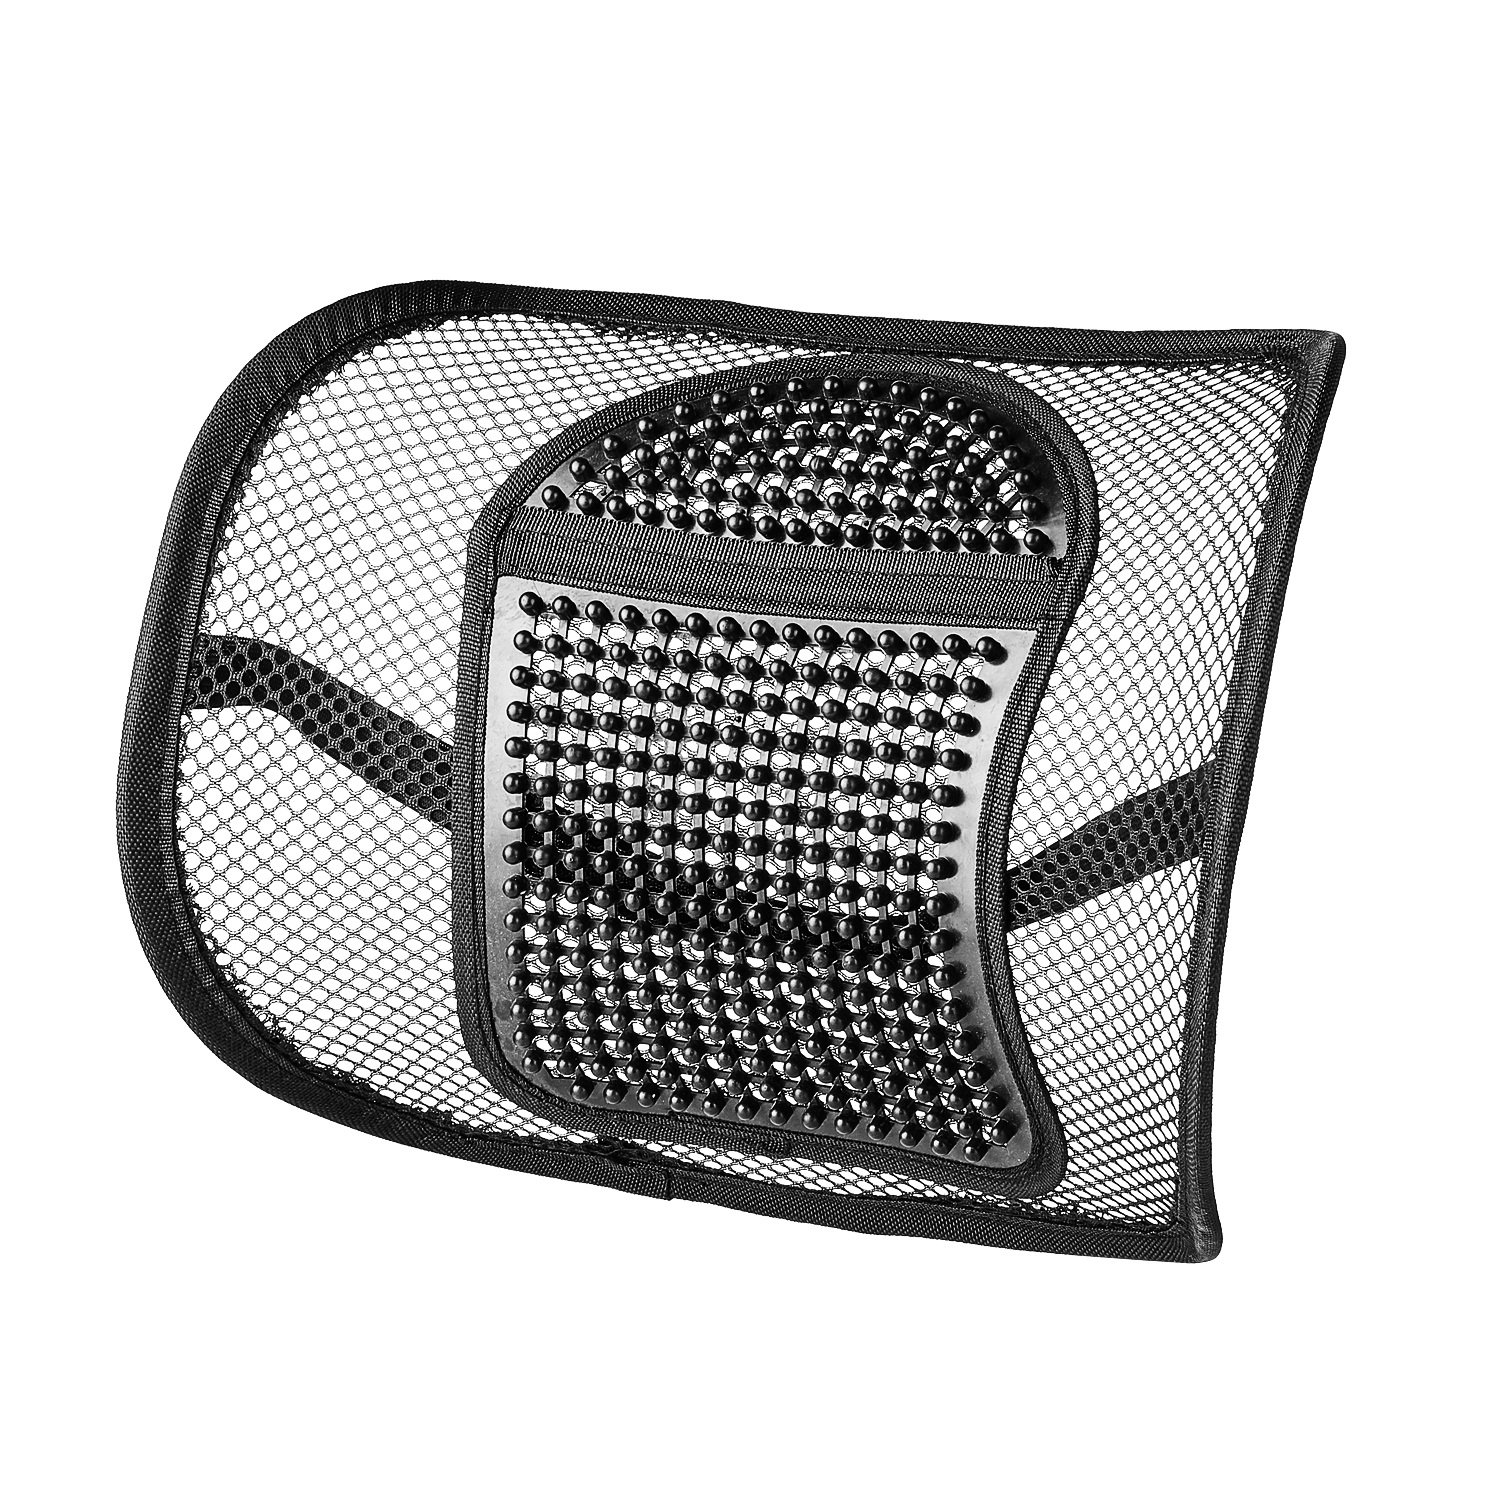 SERMICLE Back Support,Vekey Lumbar Support Back Cushion Seat Cushion Elastic Band Mesh Breathable Comfortable Adjustable for All Types Car Seat Office Chair (PP Fiber Mesh, New Package)